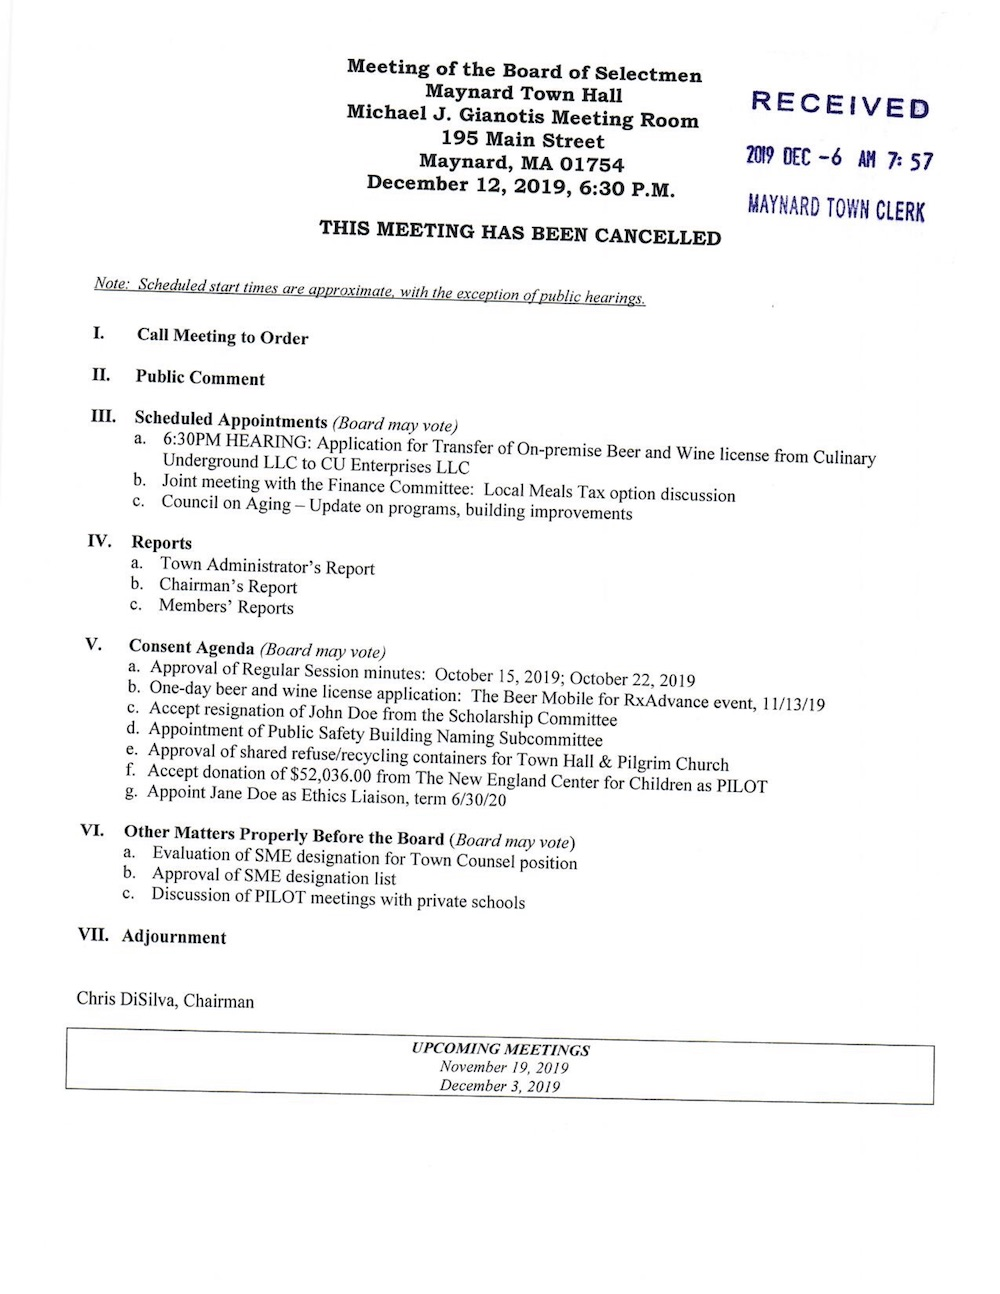 Open Meeting Law Guidelines Notice Of Meetings And Room Reservation Town Of Maynard Massachusetts Resident council meeting minutes template